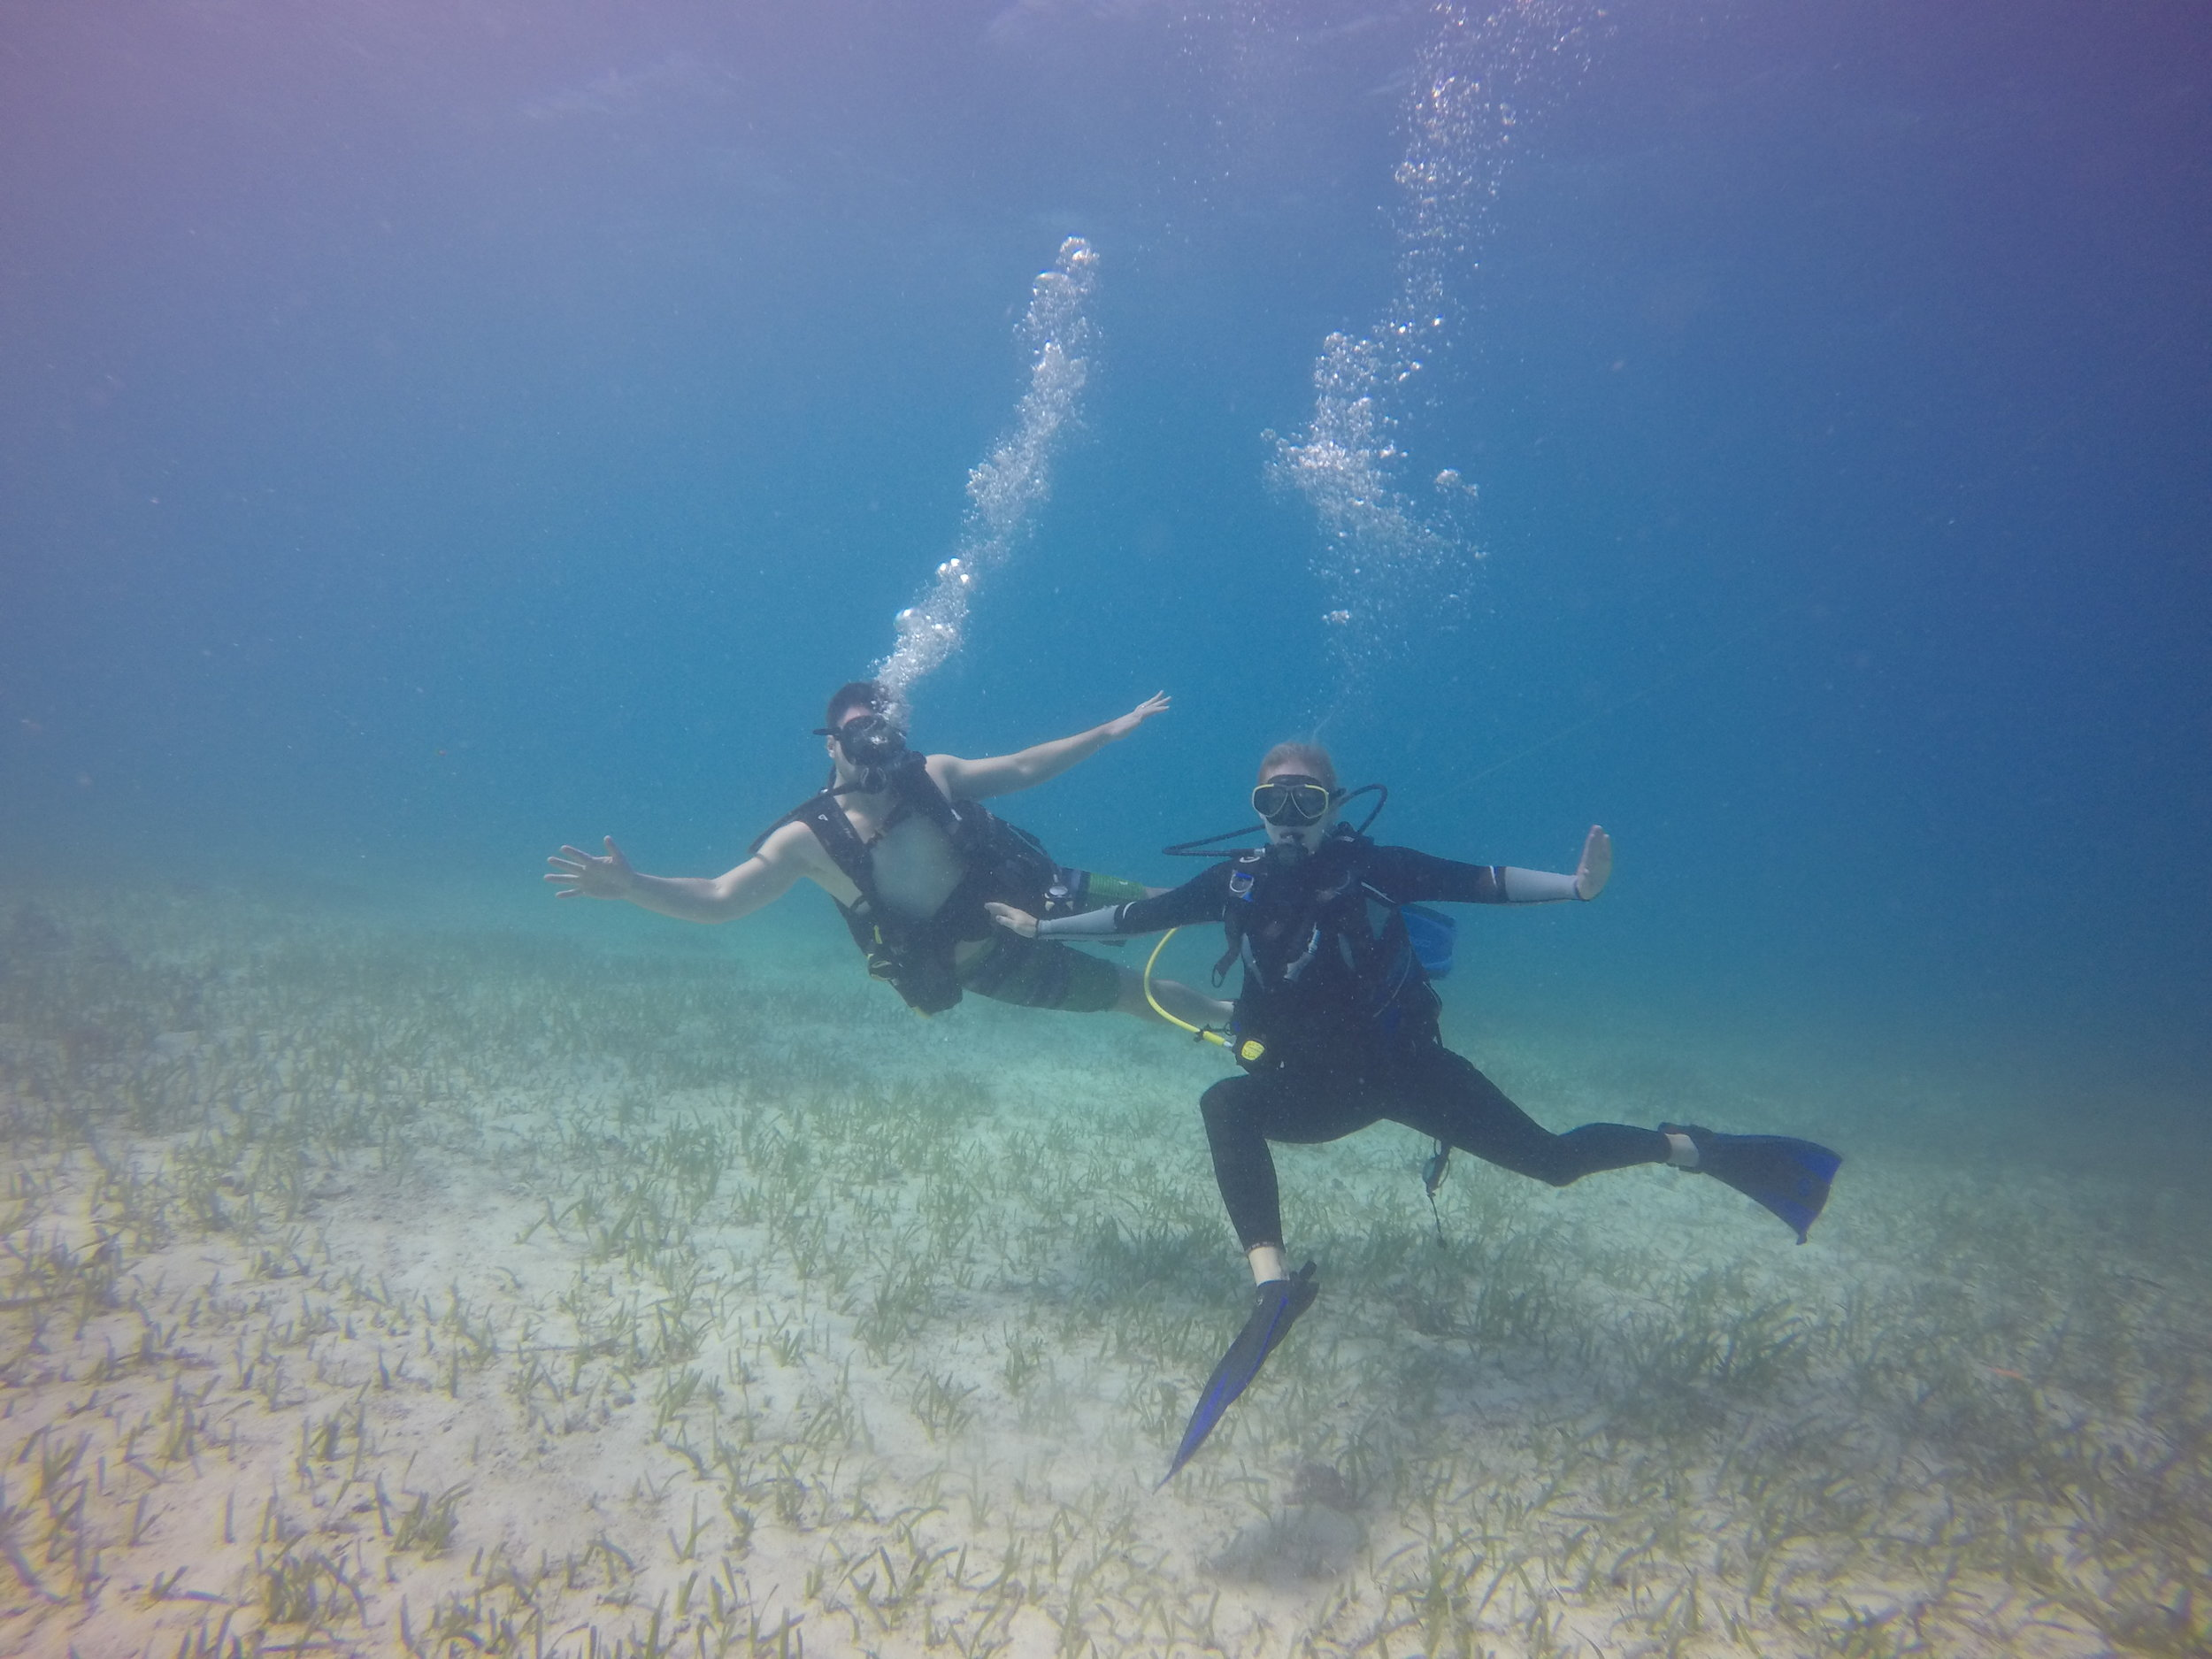 Discover SCUBA - While not an actual SCUBA certification, the Discover SCUBA experience allows you to give diving a try. Learn how to use SCUBA equipment in shallow water with a quick introduction to basic SCUBA skills. Then go on an actual SCUBA dive along the Belize Barrier Reef.